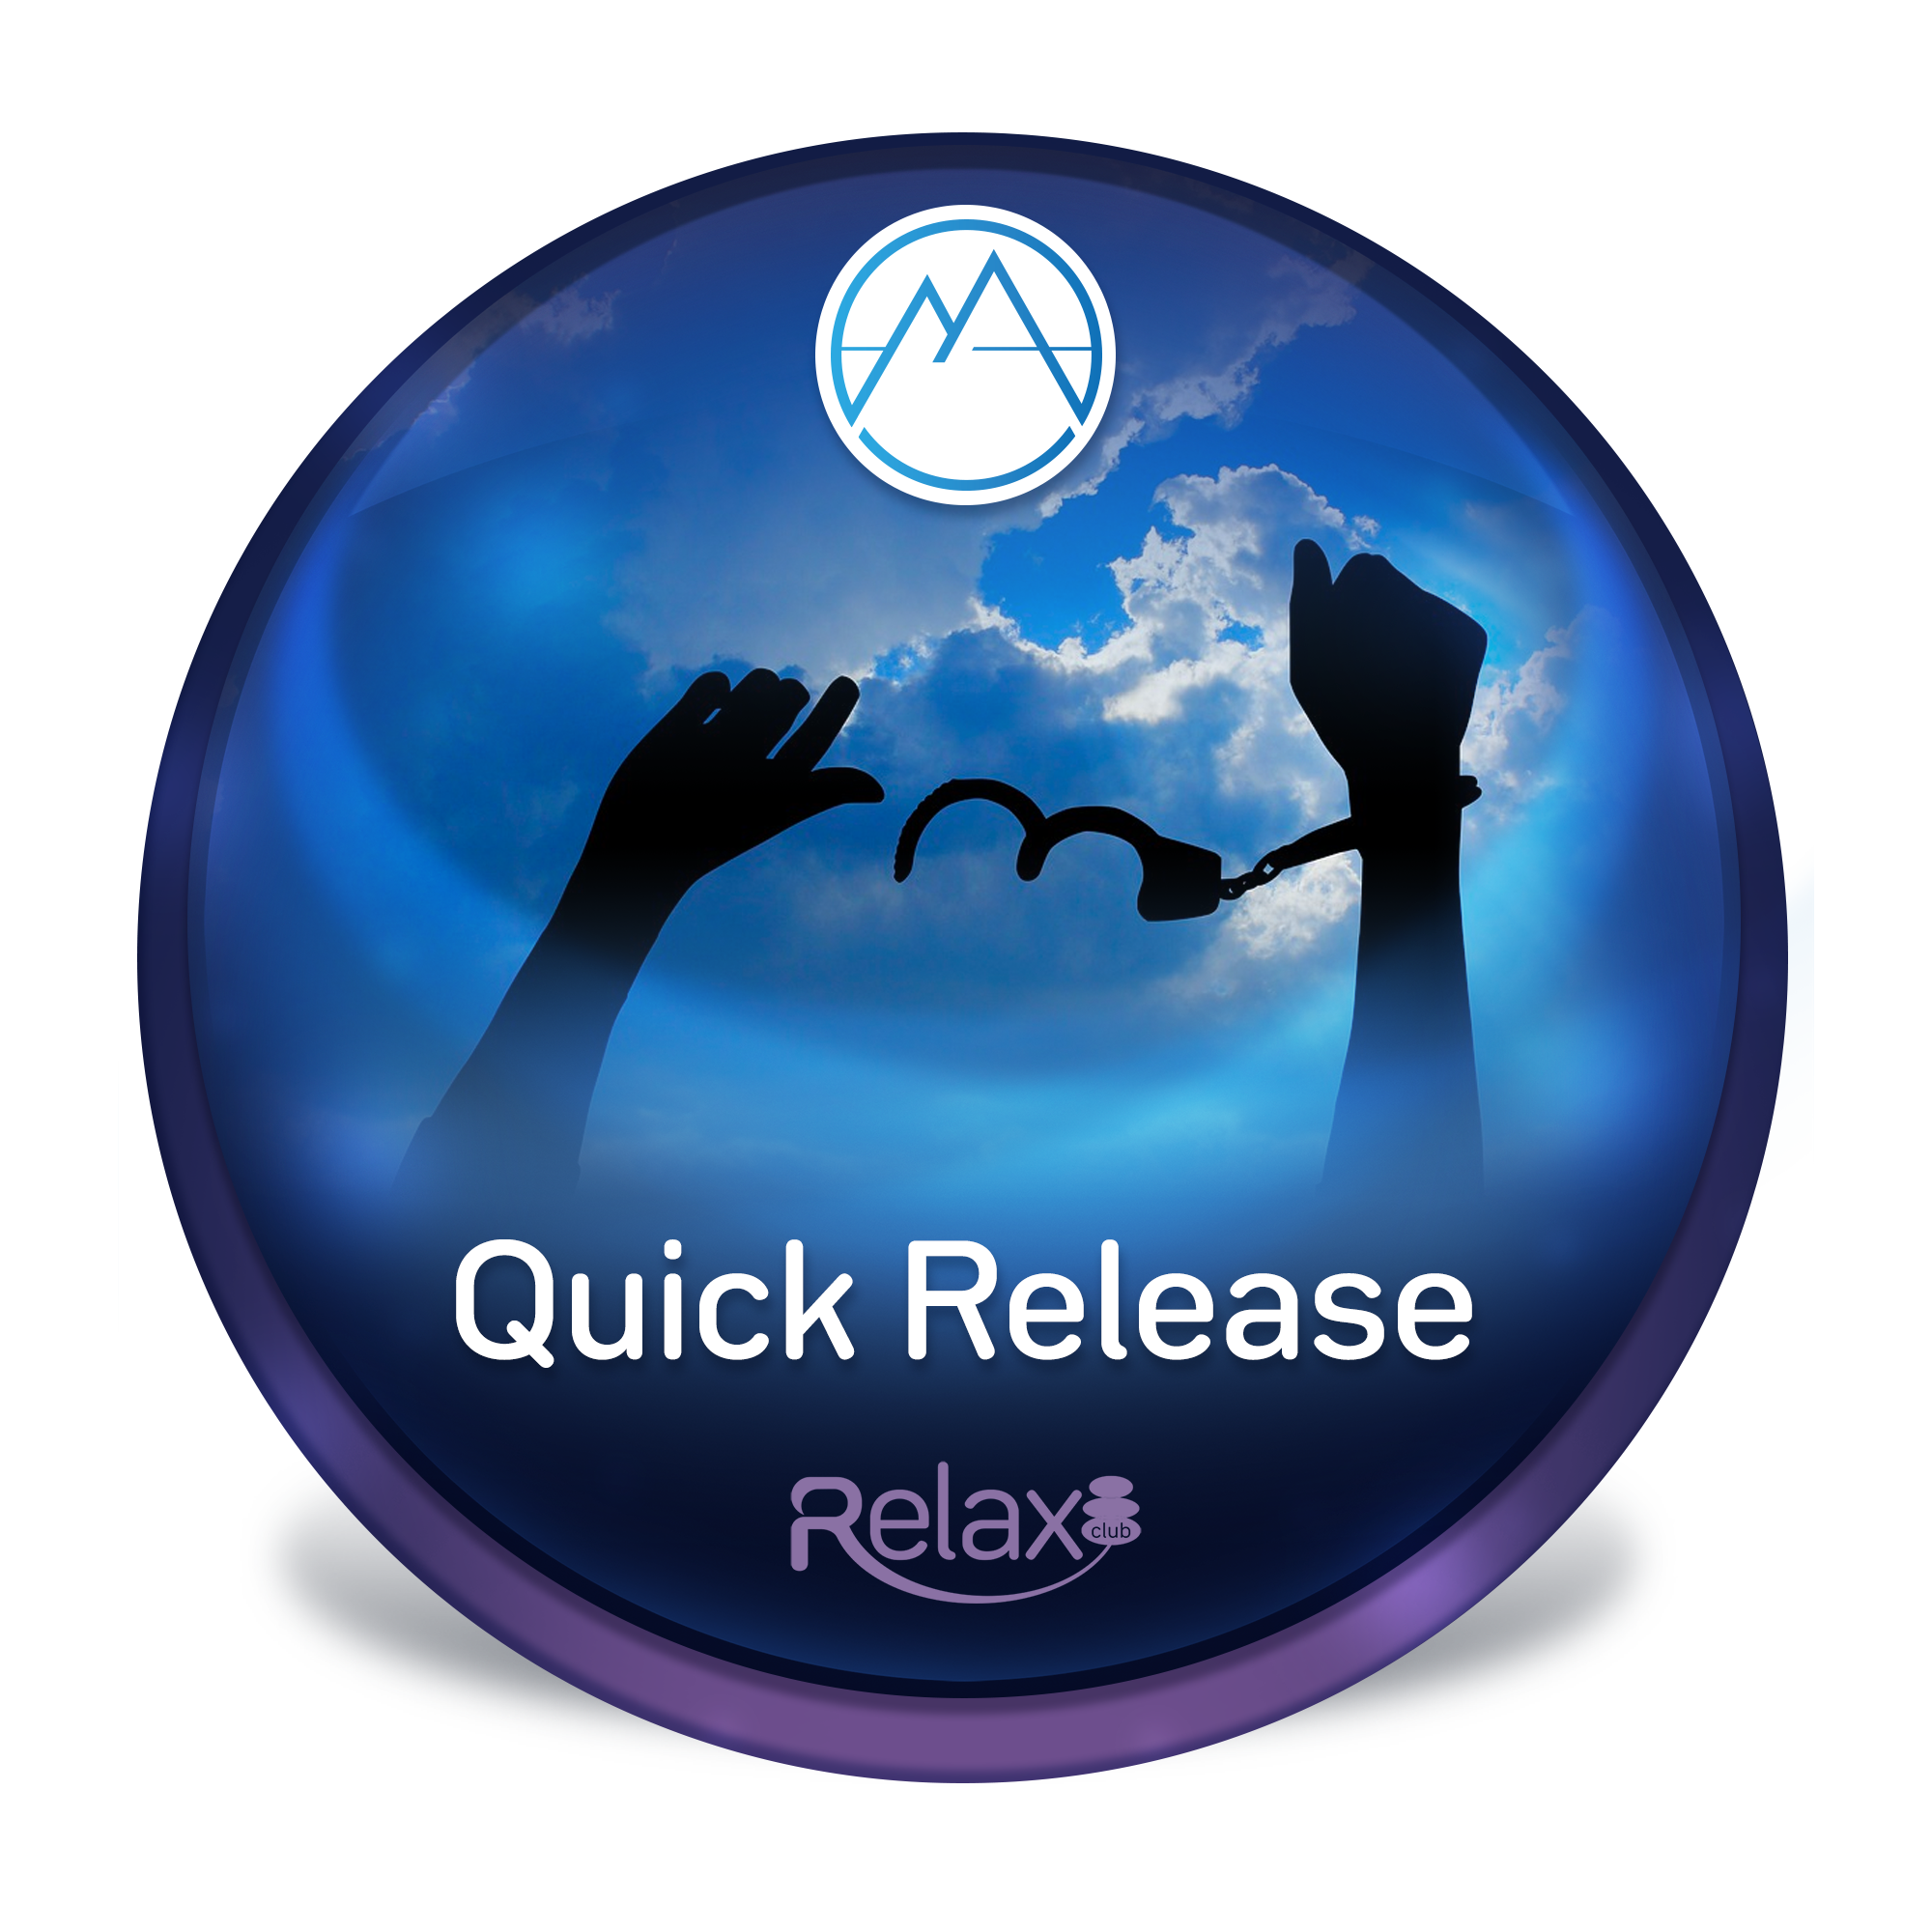 Quick Release cover image